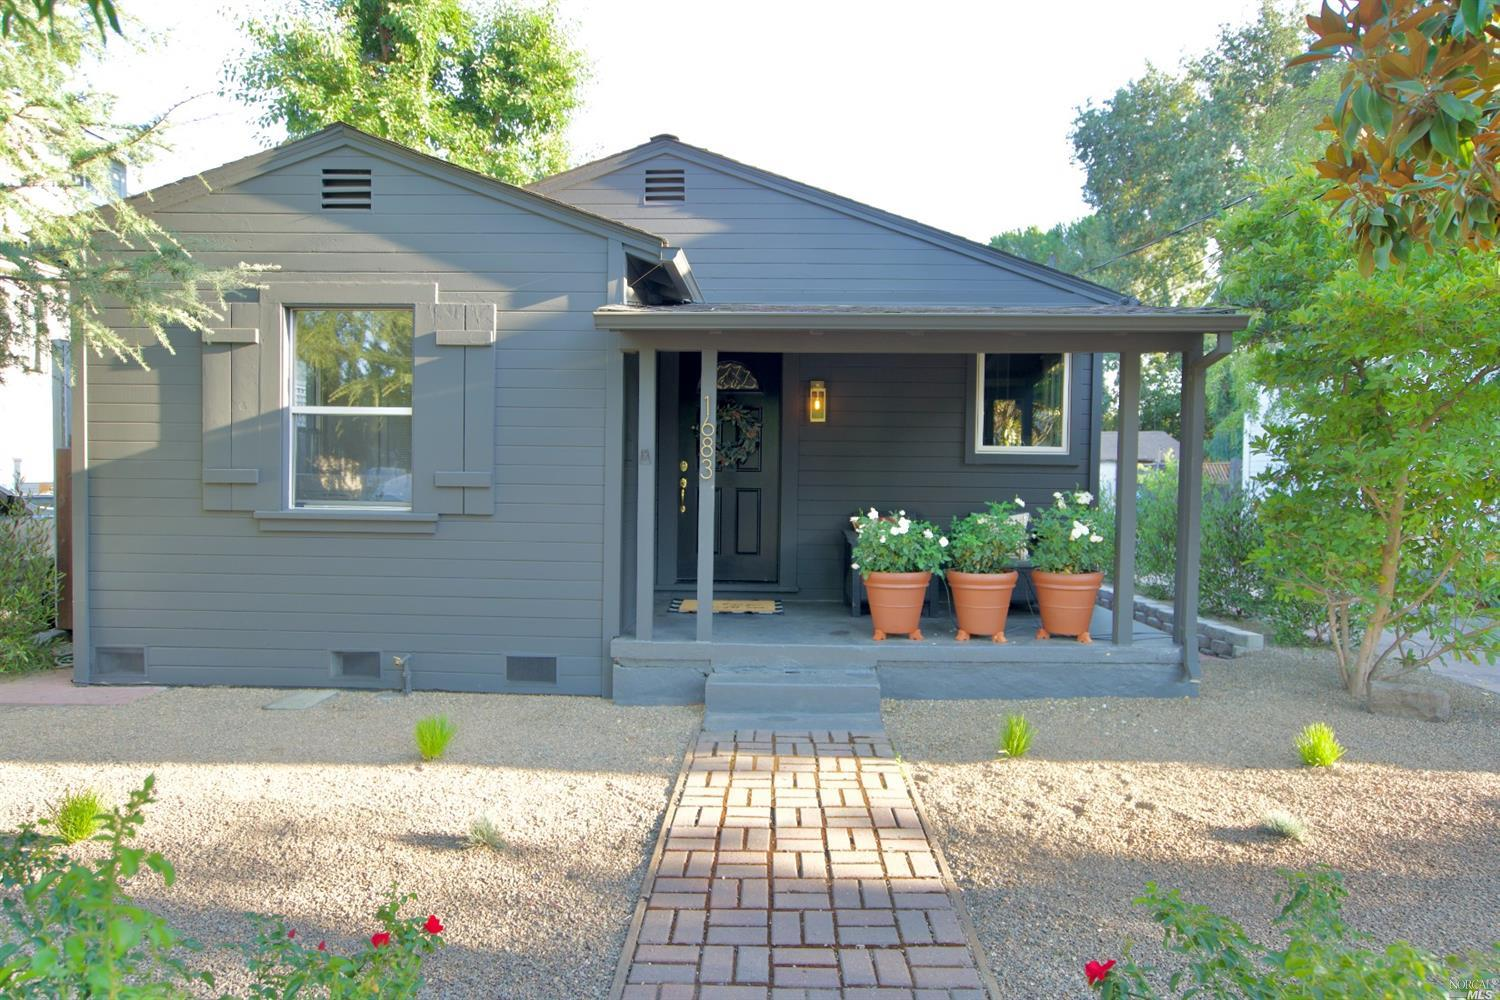 An absolutely charming bungalow nestled in the heart of the Napa Valley. This beautifully remodeled